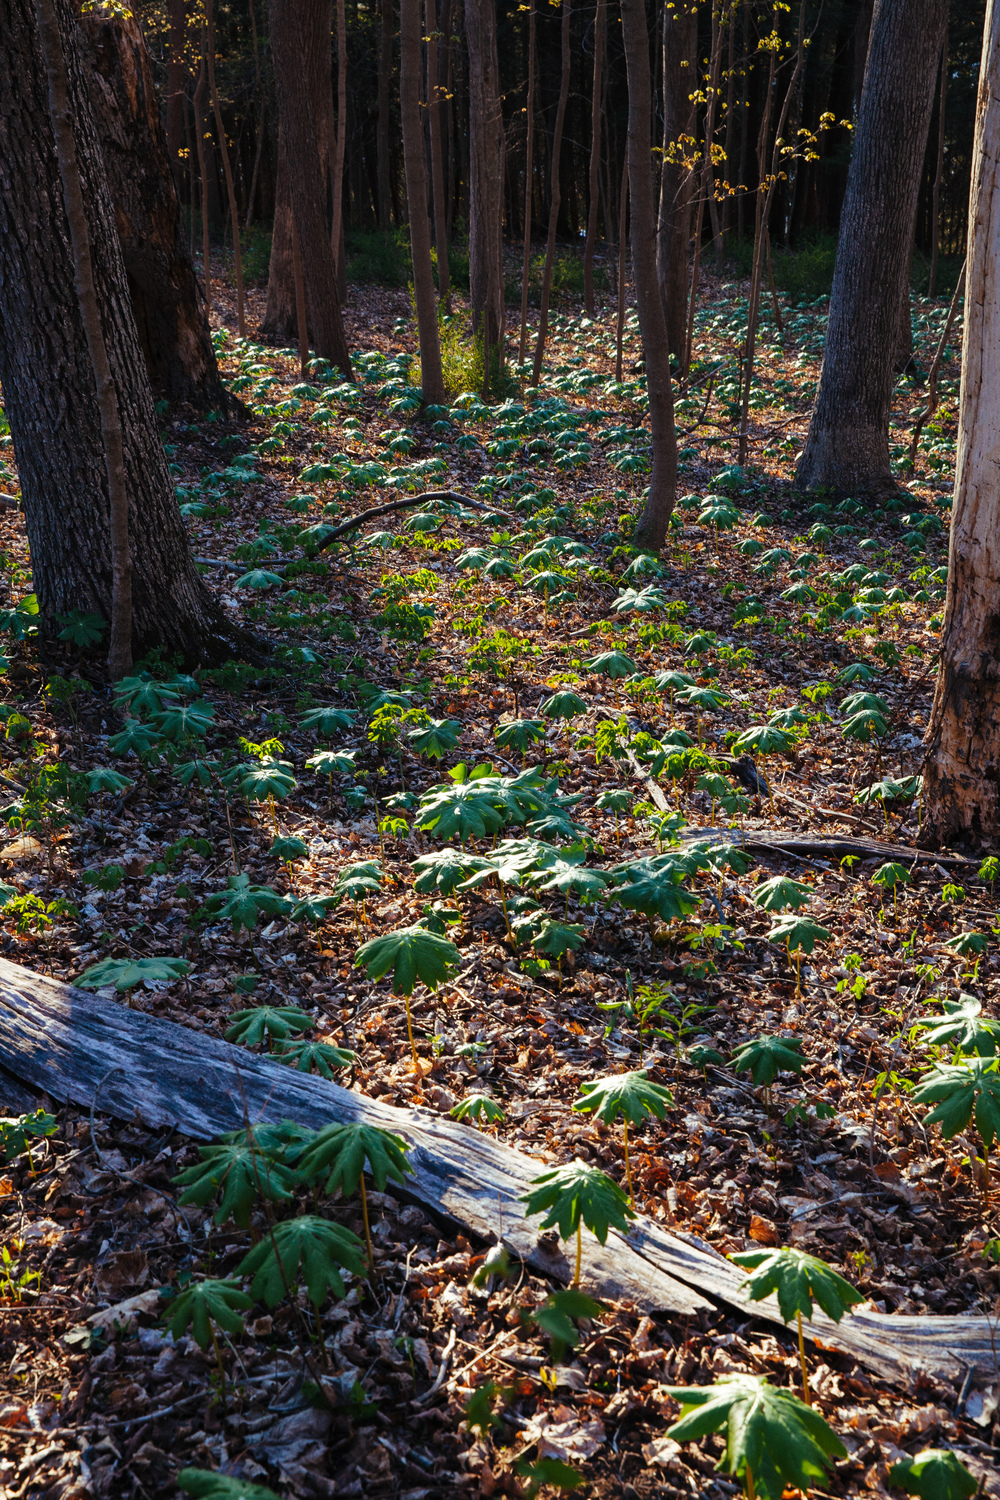 Baby tree saplings growing at the forest floor in the Delaware Water Gap, New Jersey.